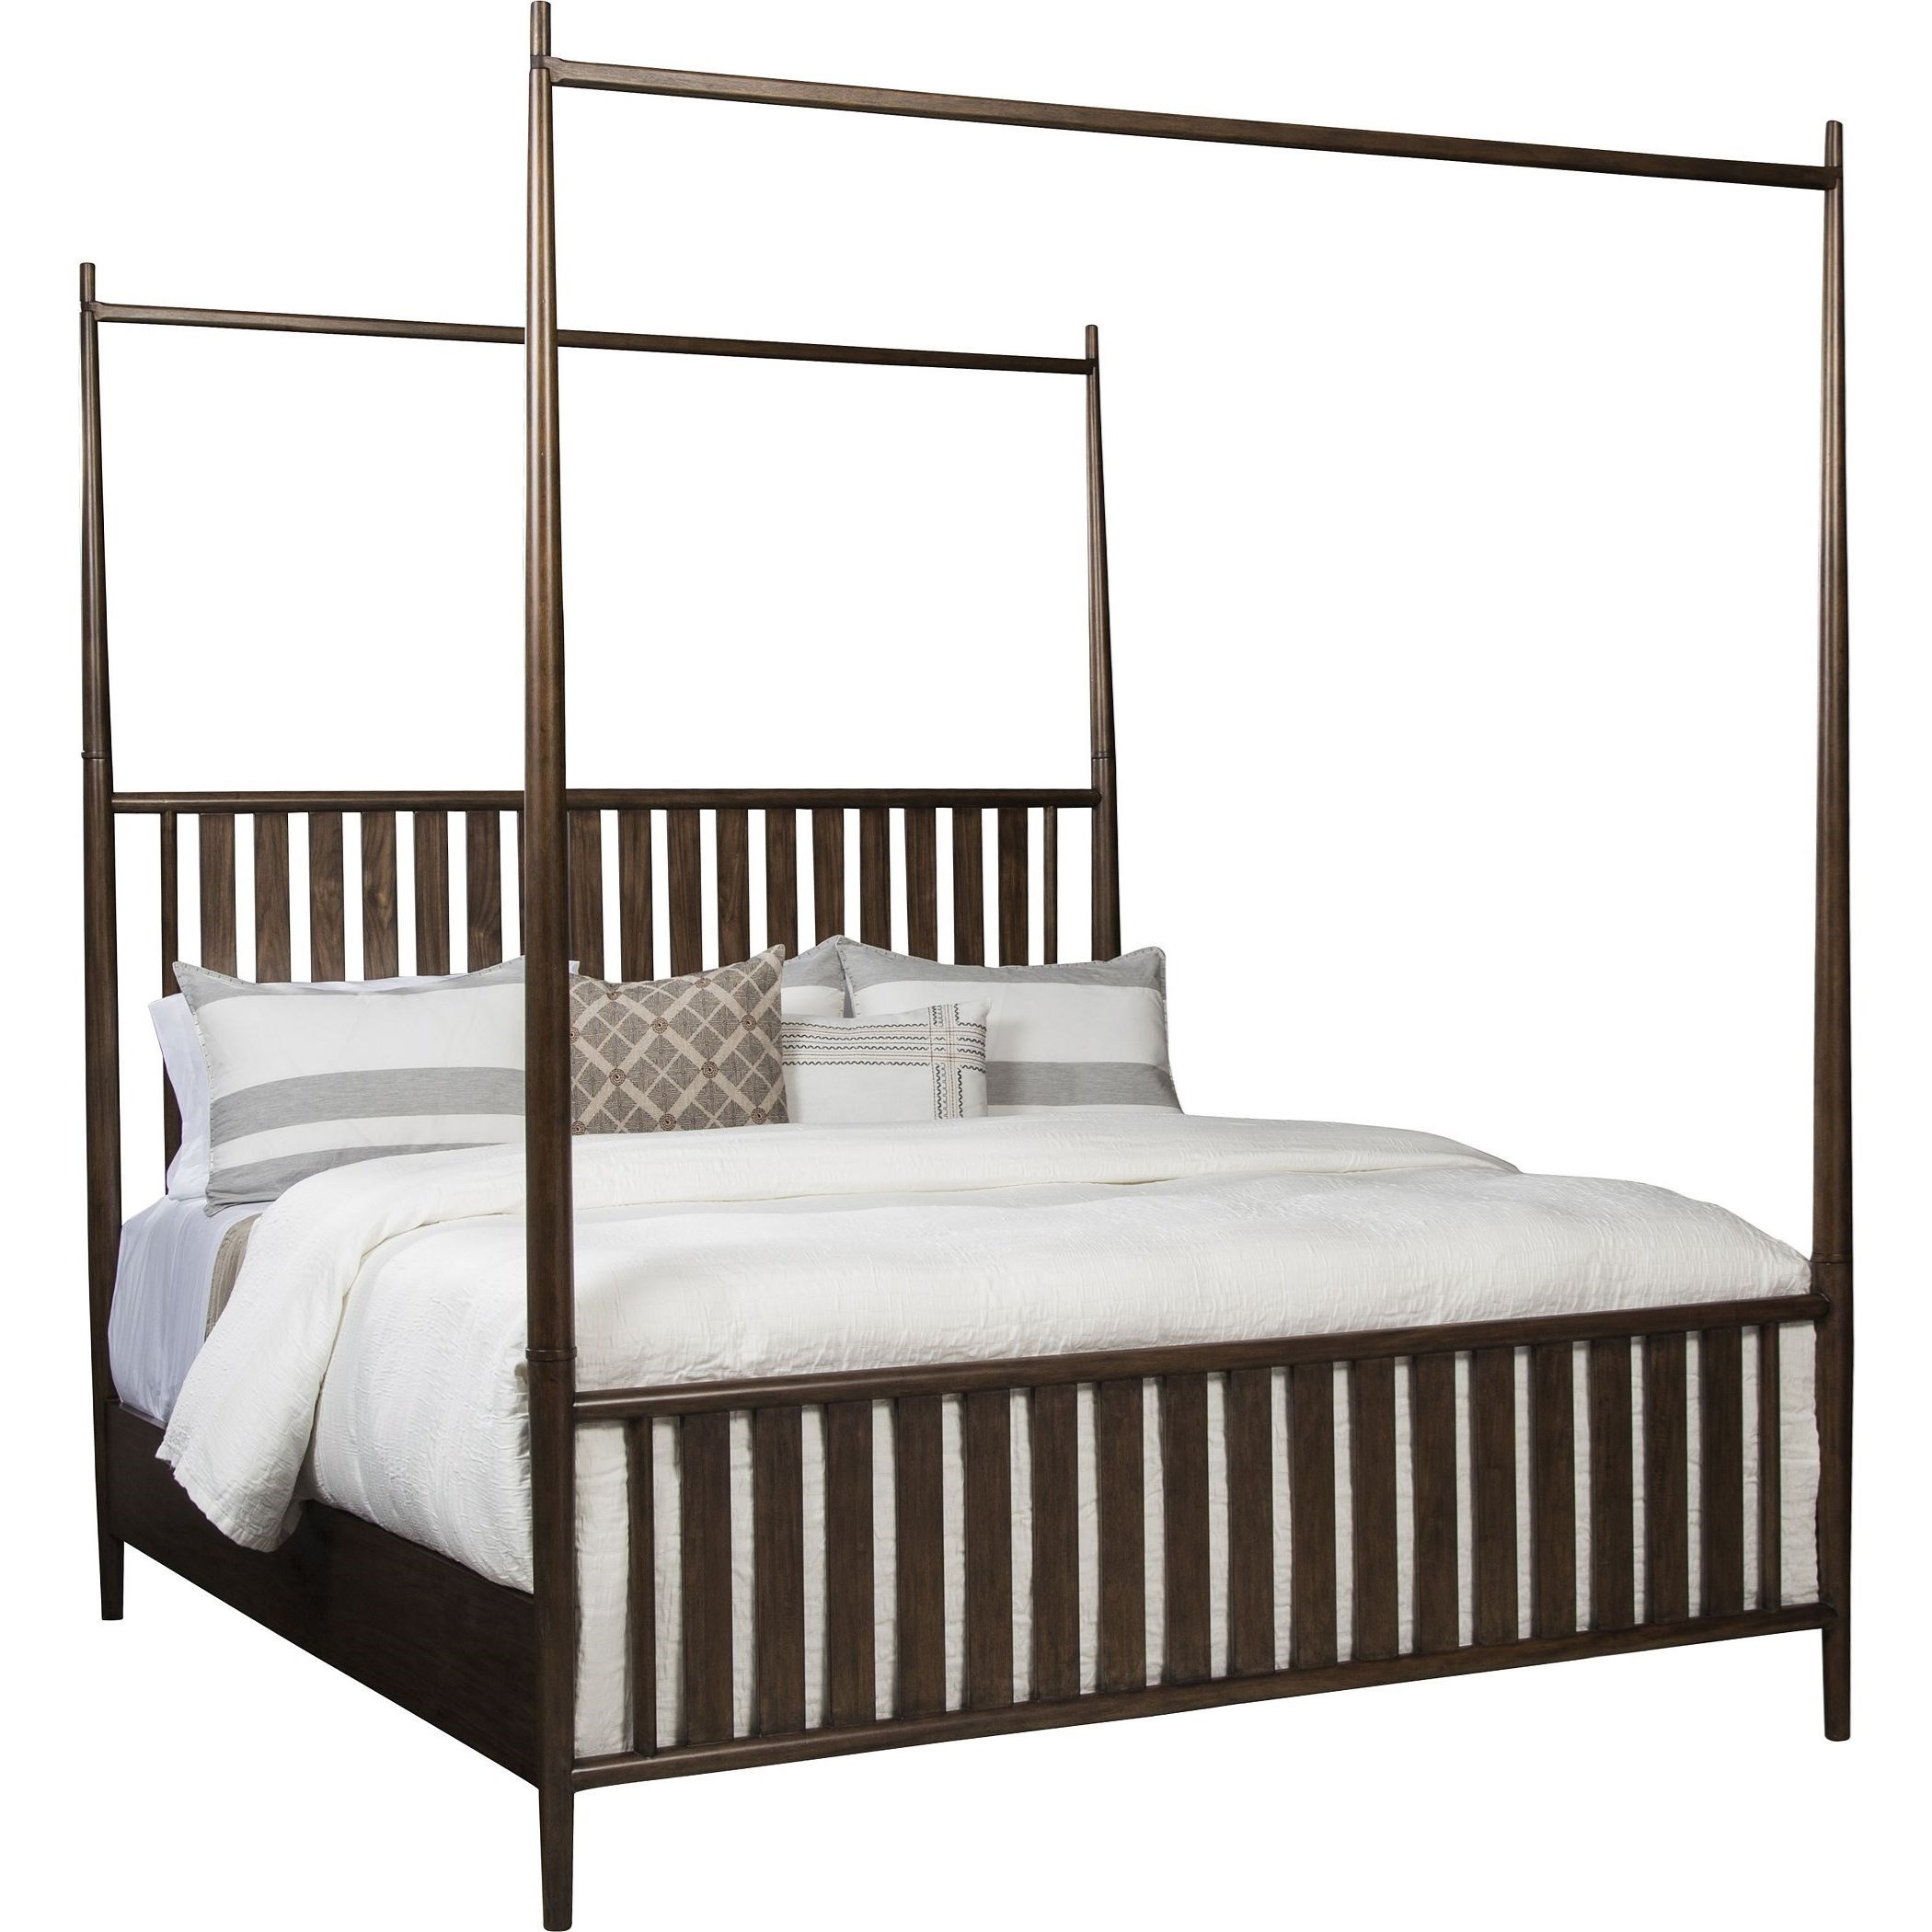 ED Ellen DeGeneres Crafted by Thomasville   Marmont Cal King Bed - Item Number: 85811-477